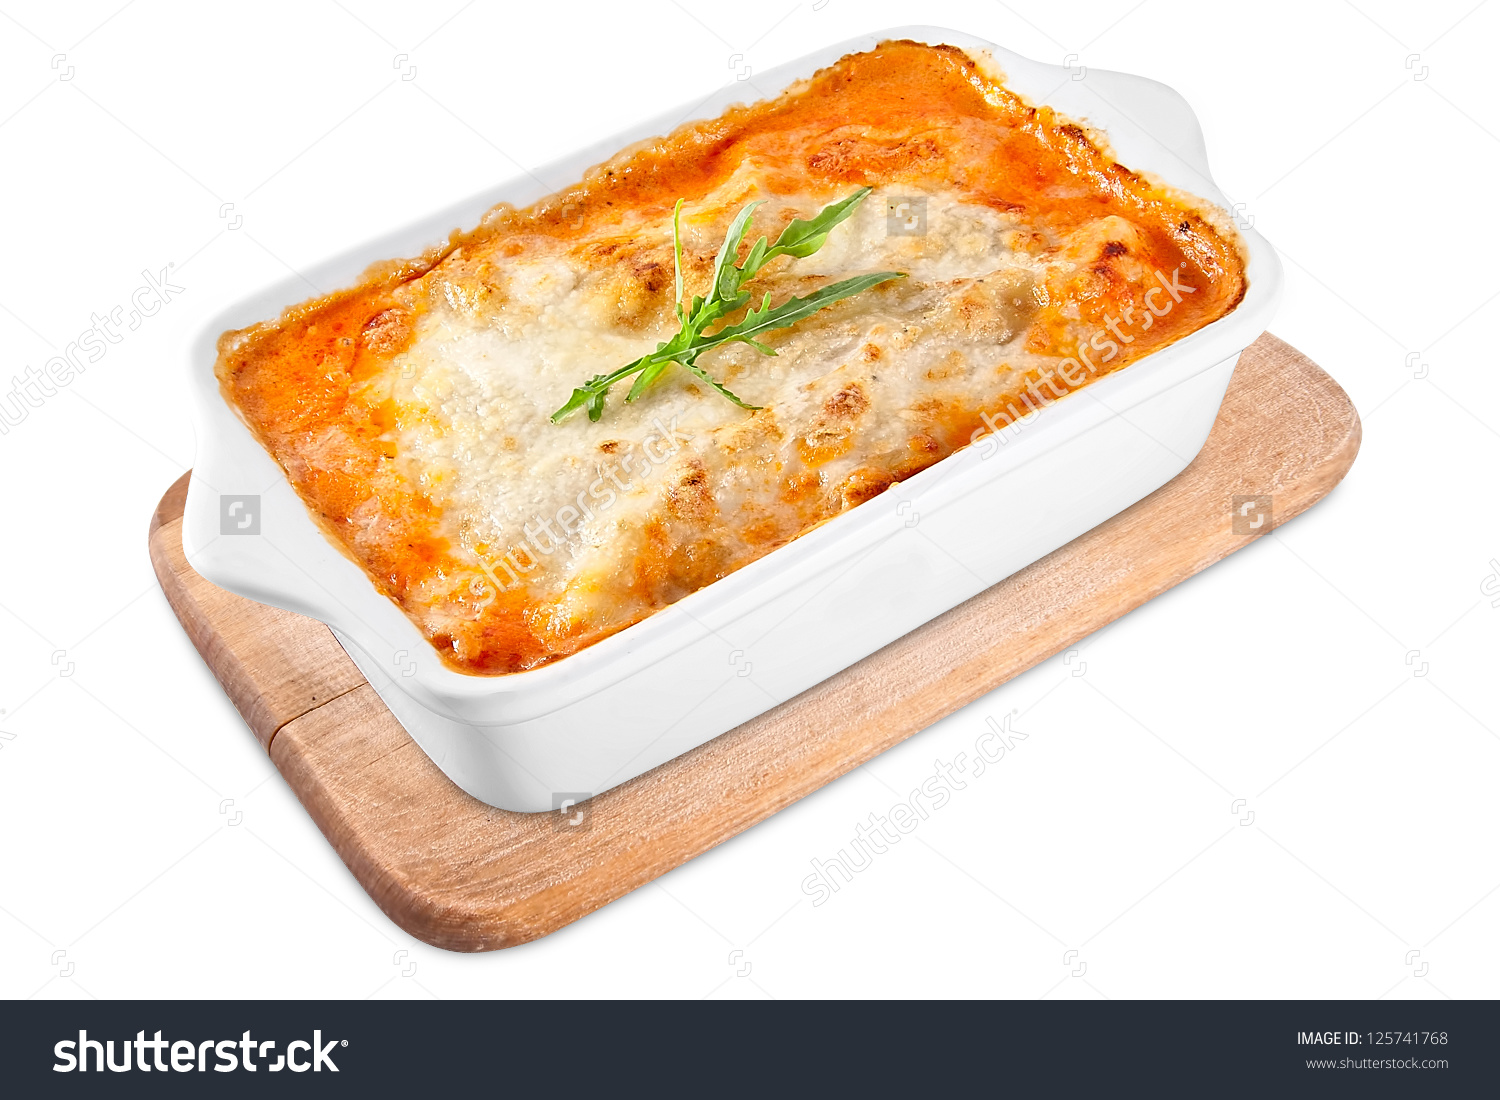 Baked Lasagna Ceramic Casserole Dish Stock Photo 125741768.